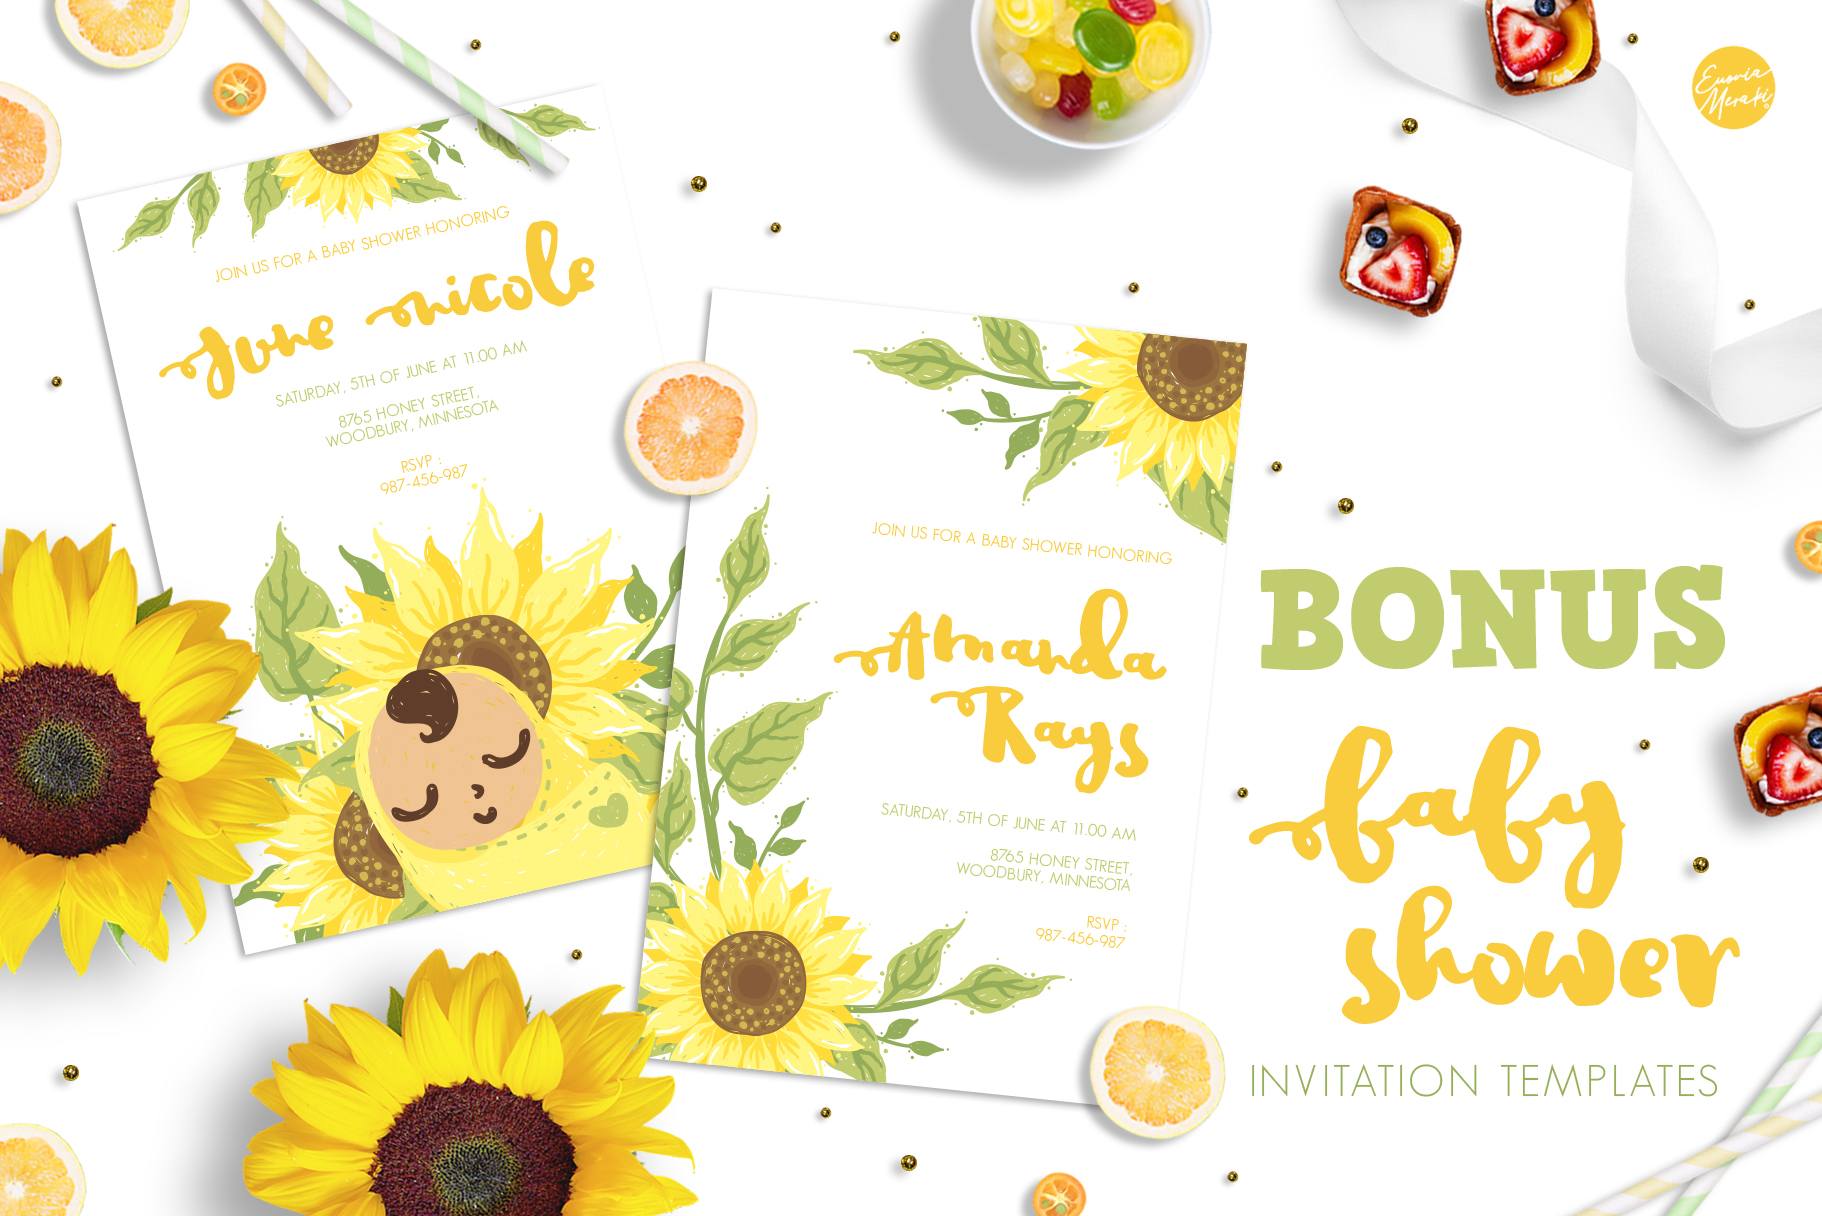 Sunflower Baby Shower With Invitation Templates